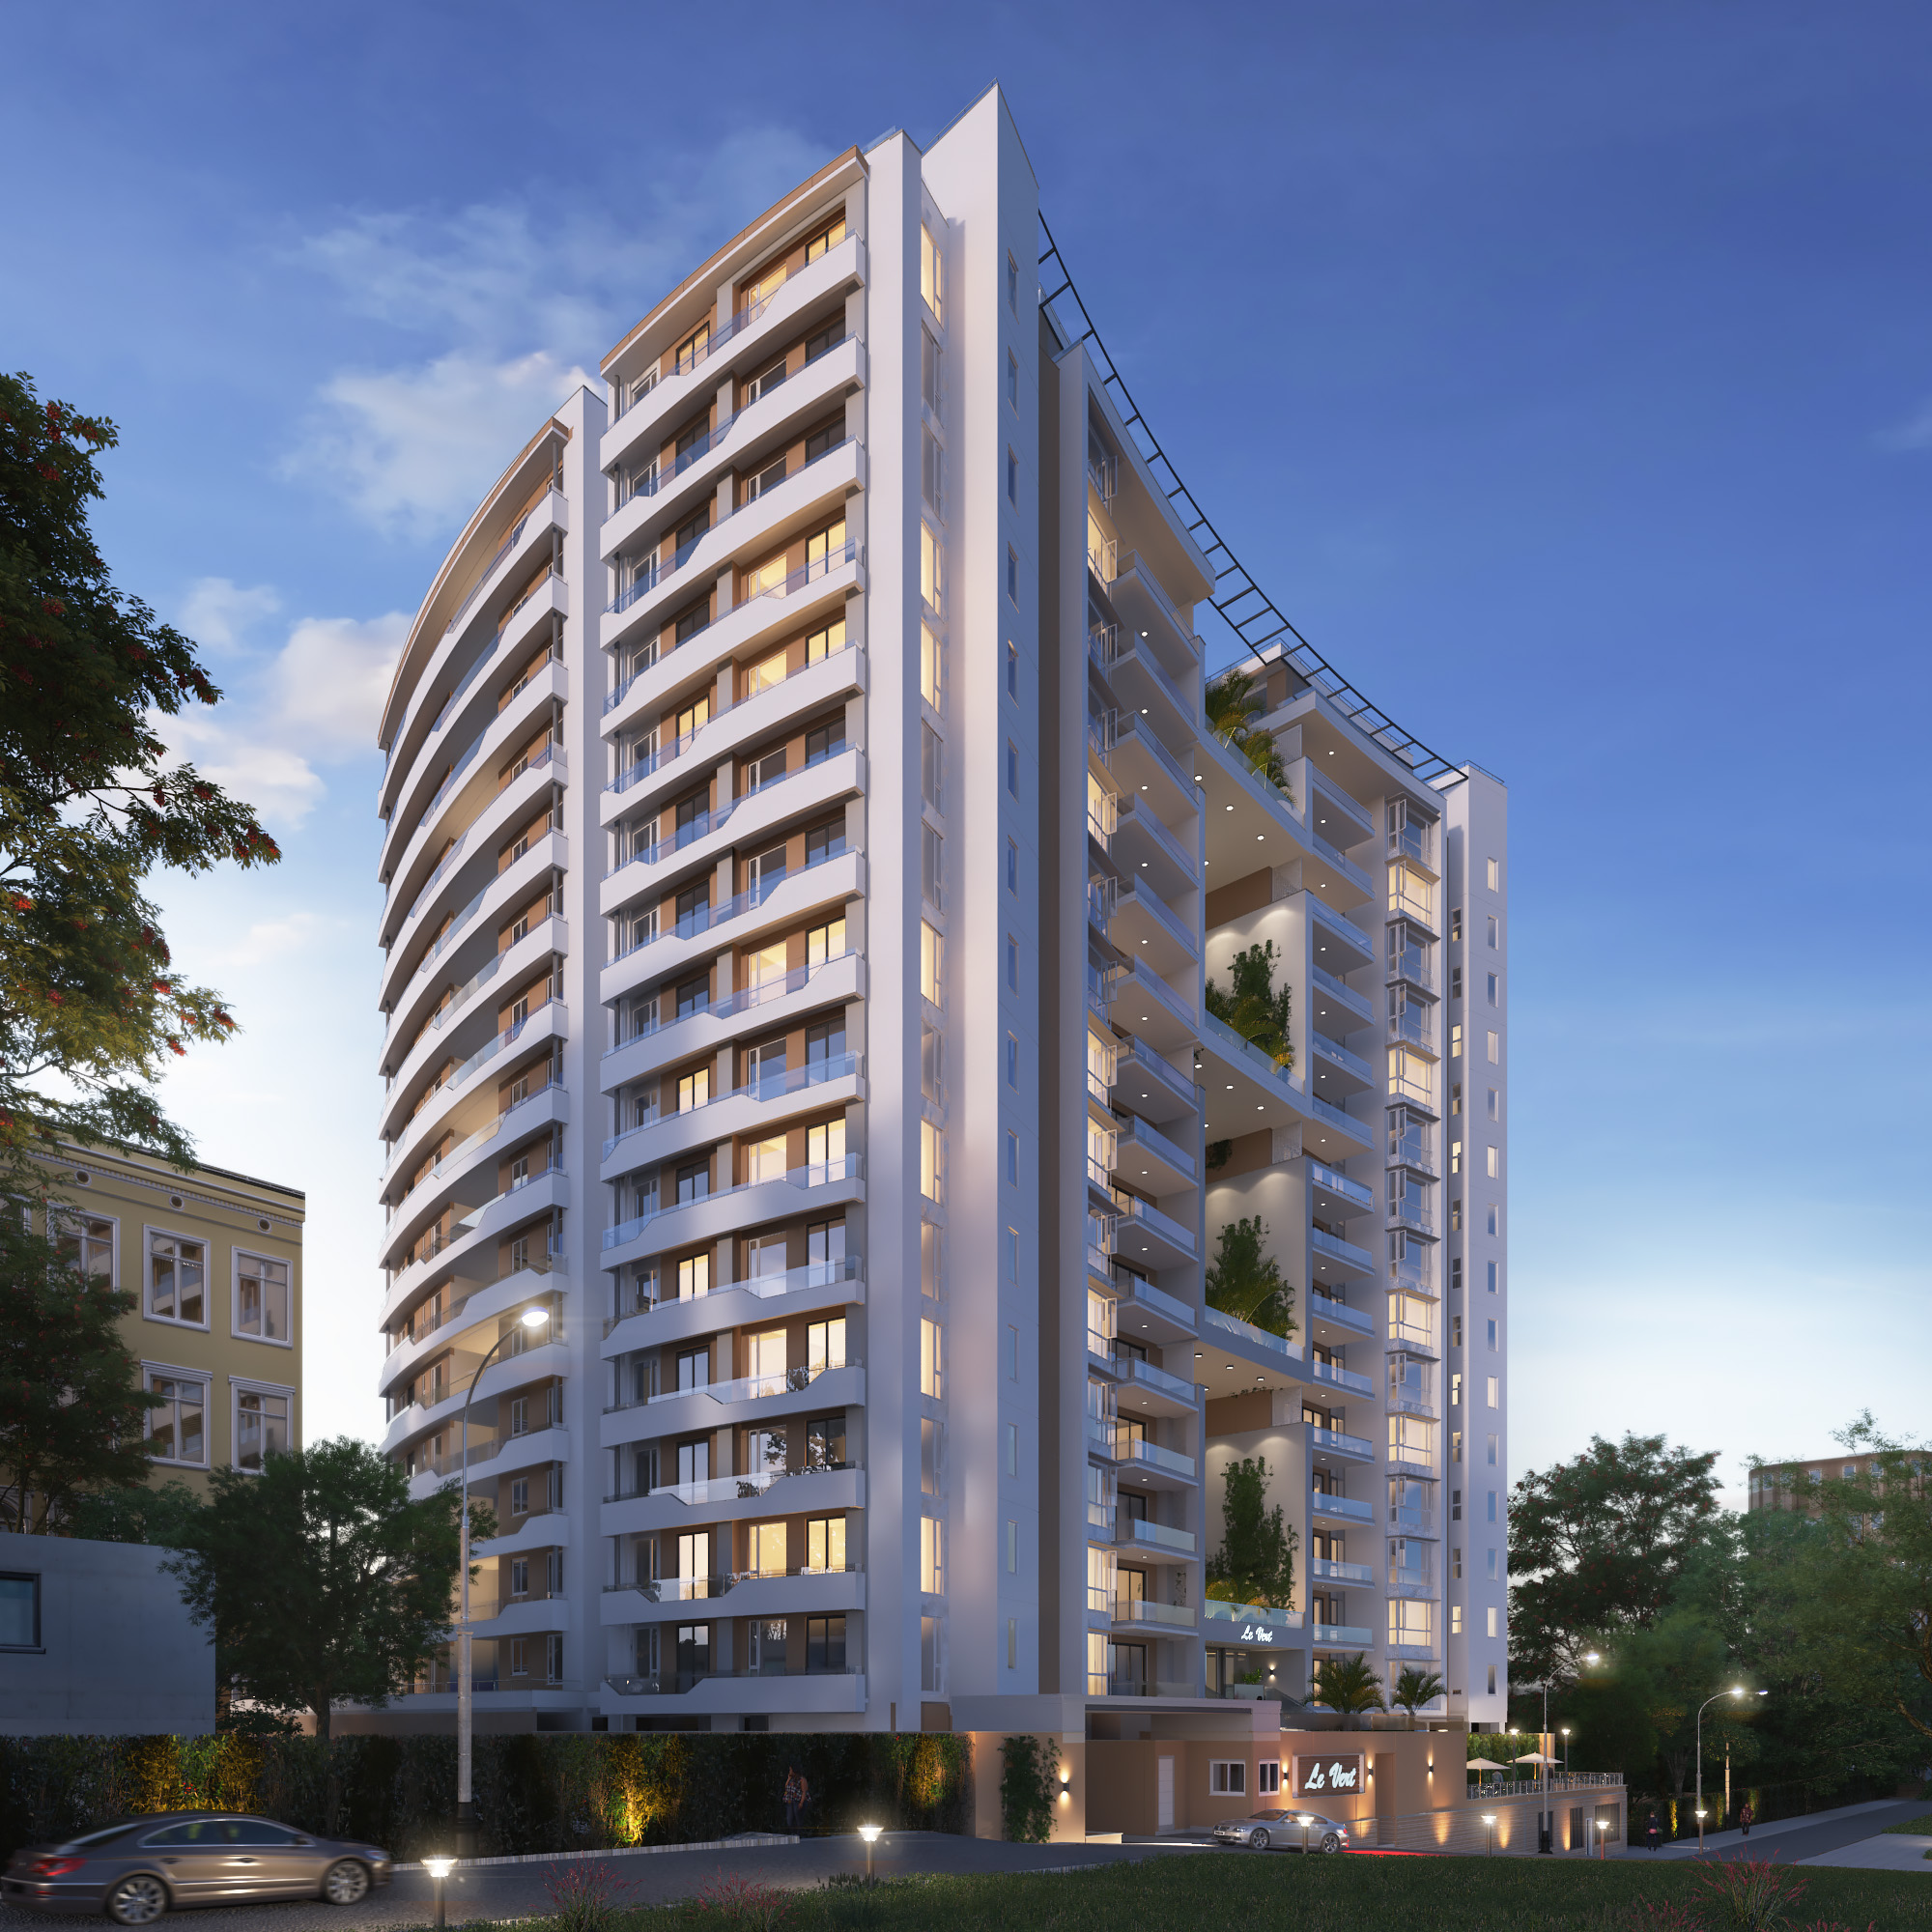 ICONIC 3 & 4 Bed Apartments, RIVERSIDE DRIVE